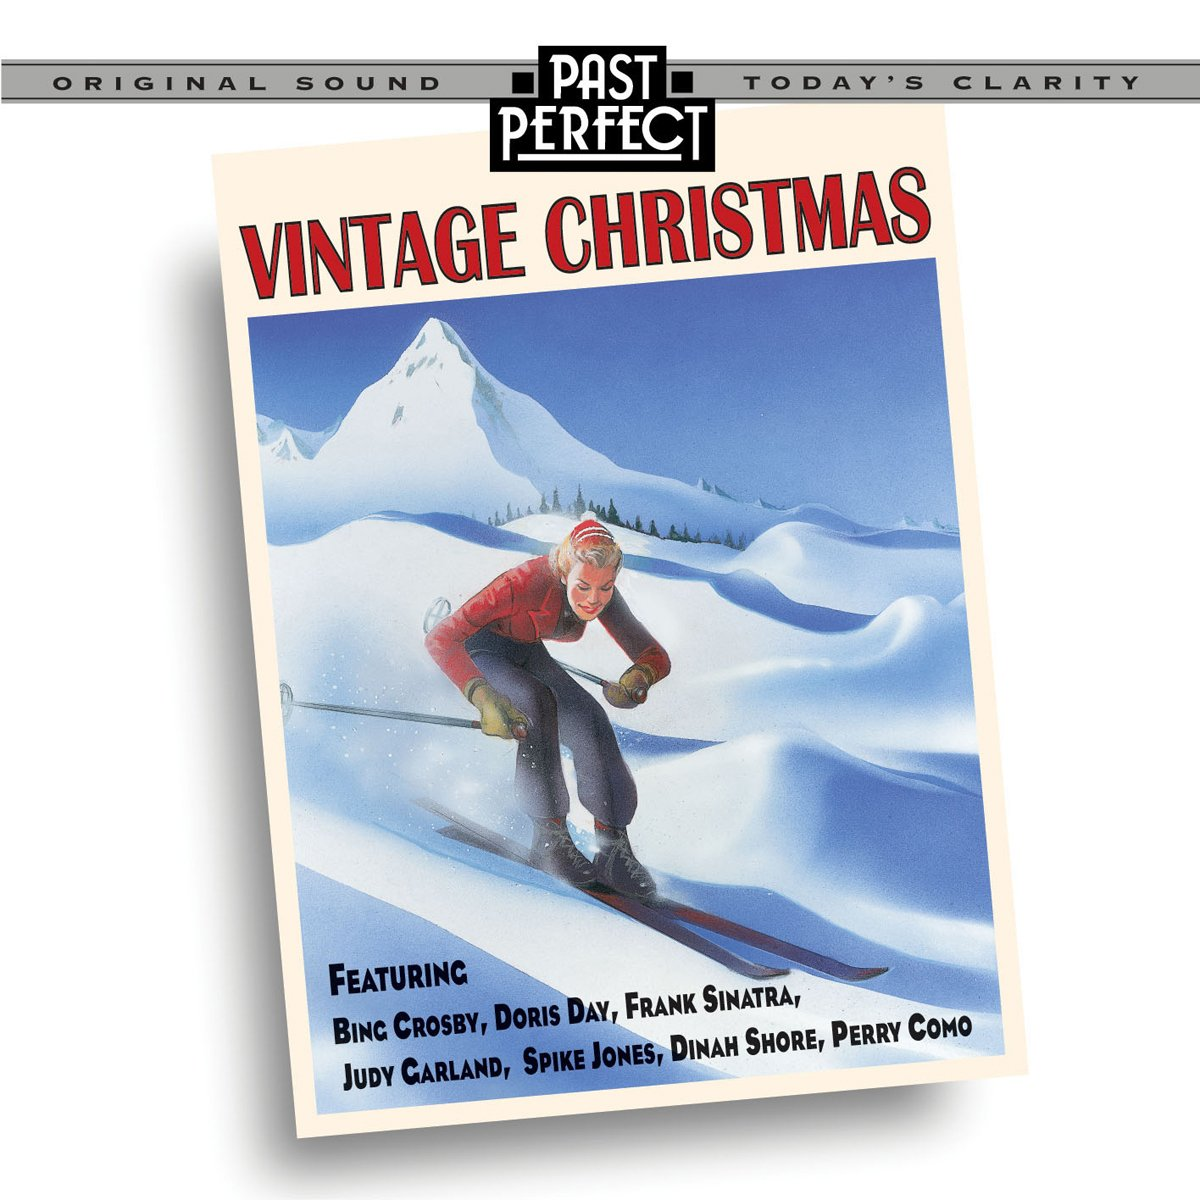 Vintage Christmas - Best Songs From the 1920s, 30s & 40s by Past Perfect